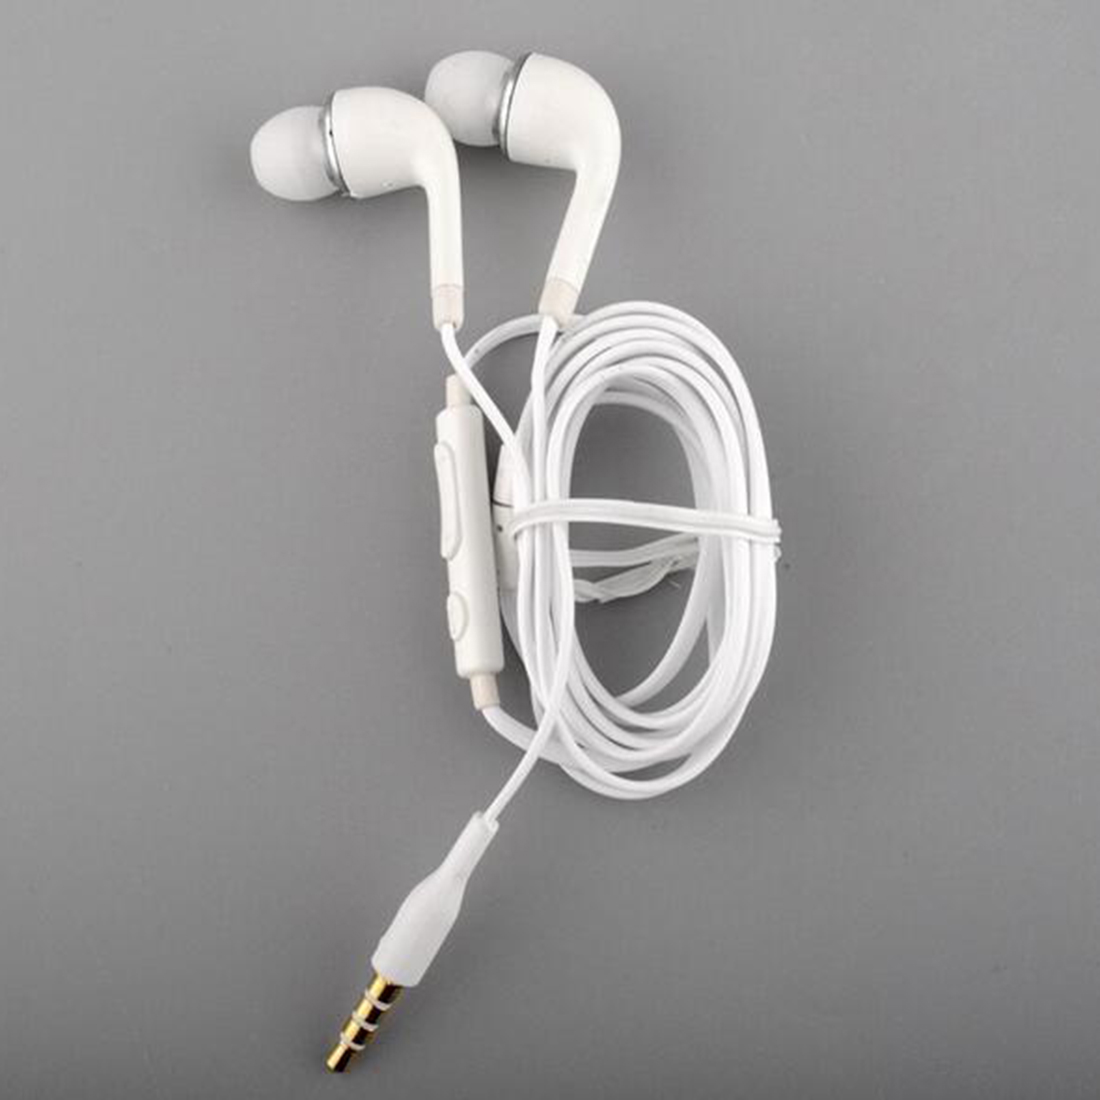 In-Ear Earphone For Samsung With Mic Wired Control In Ear Earphone Phone Earphones For Samsung Galaxy S4 S3 S2 S5 s6 s7 Note 2 s6 3 5mm in ear earphones headset with mic volume control remote control for samsung galaxy s5 s4 s7 s6 note 5 4 3 xiaomi 2